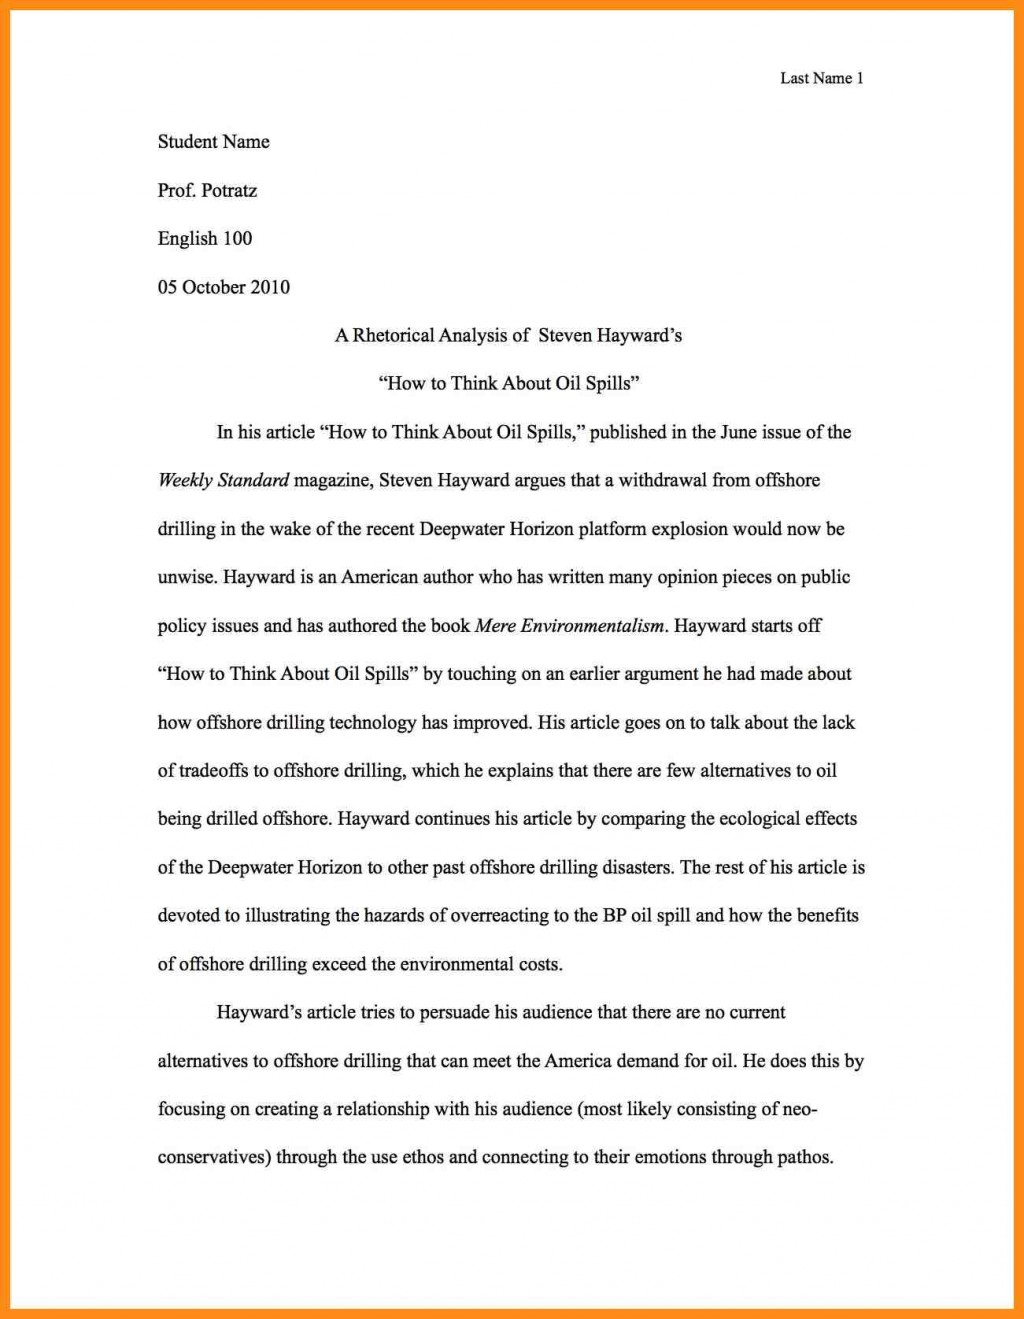 002 Write Best Rhetoricalnalysis Essay Example Of Using Ethos Pathosnd Logos Pdf What Is Frightening A Rhetorical Devices The Purpose Analysis Large